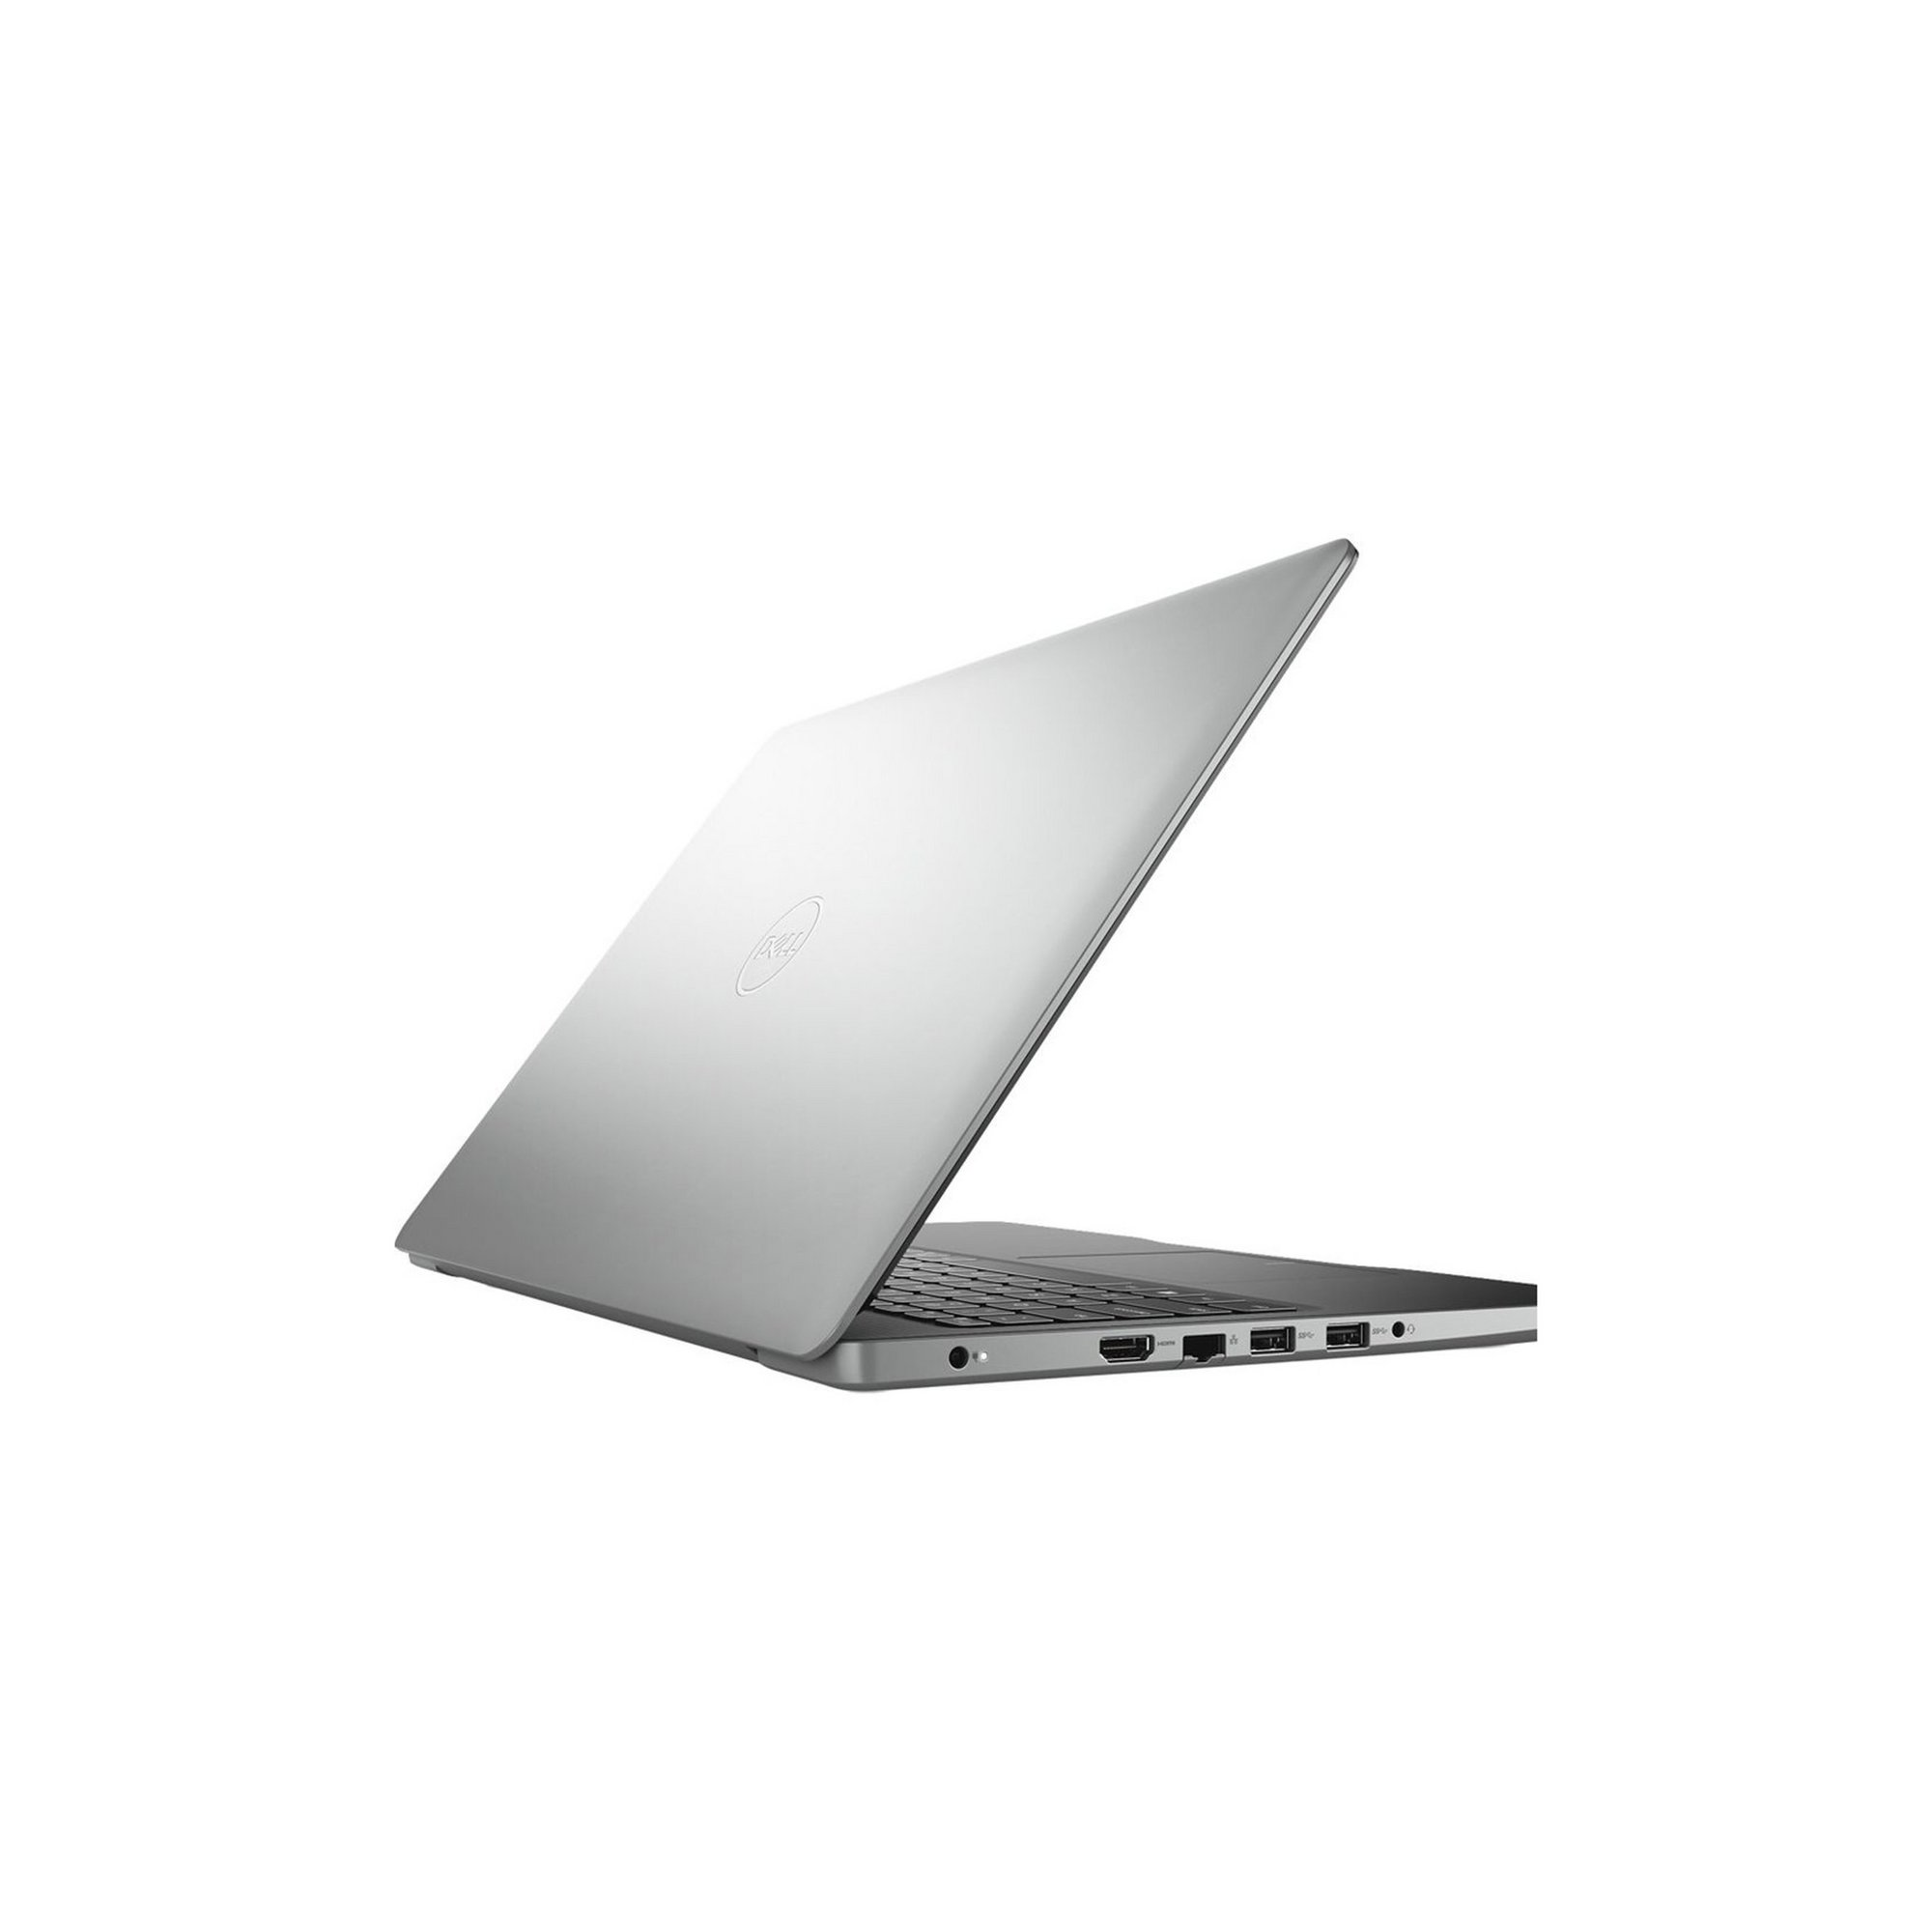 Image of DELL Inspiron 15 Inch 3000 Win10 Laptop